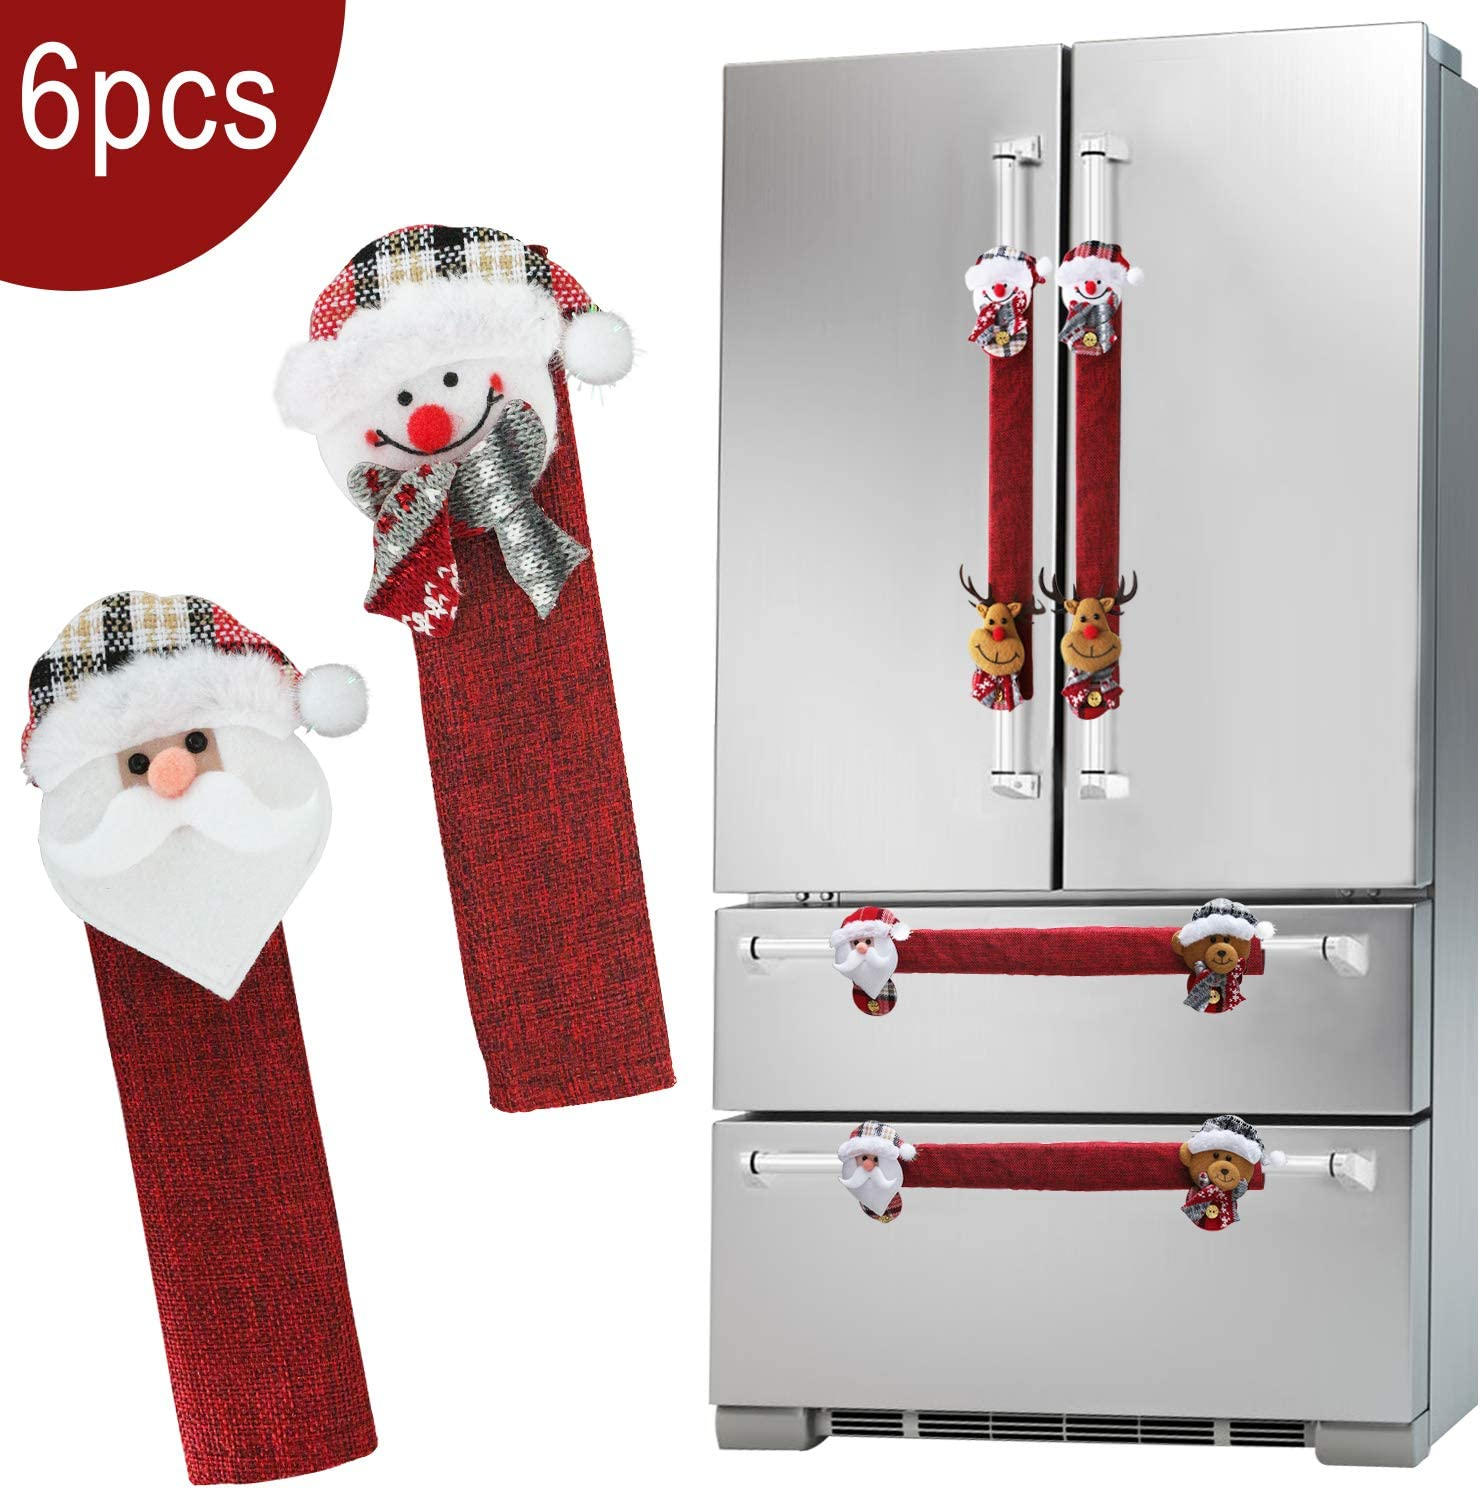 Christmas Refrigerator Door Handle Covers Set of 6, Santa Snowman Kitchen Appliance Handle Covers Fridge Microwave Oven Dishwasher Door Handle Protector Holiday Decorations